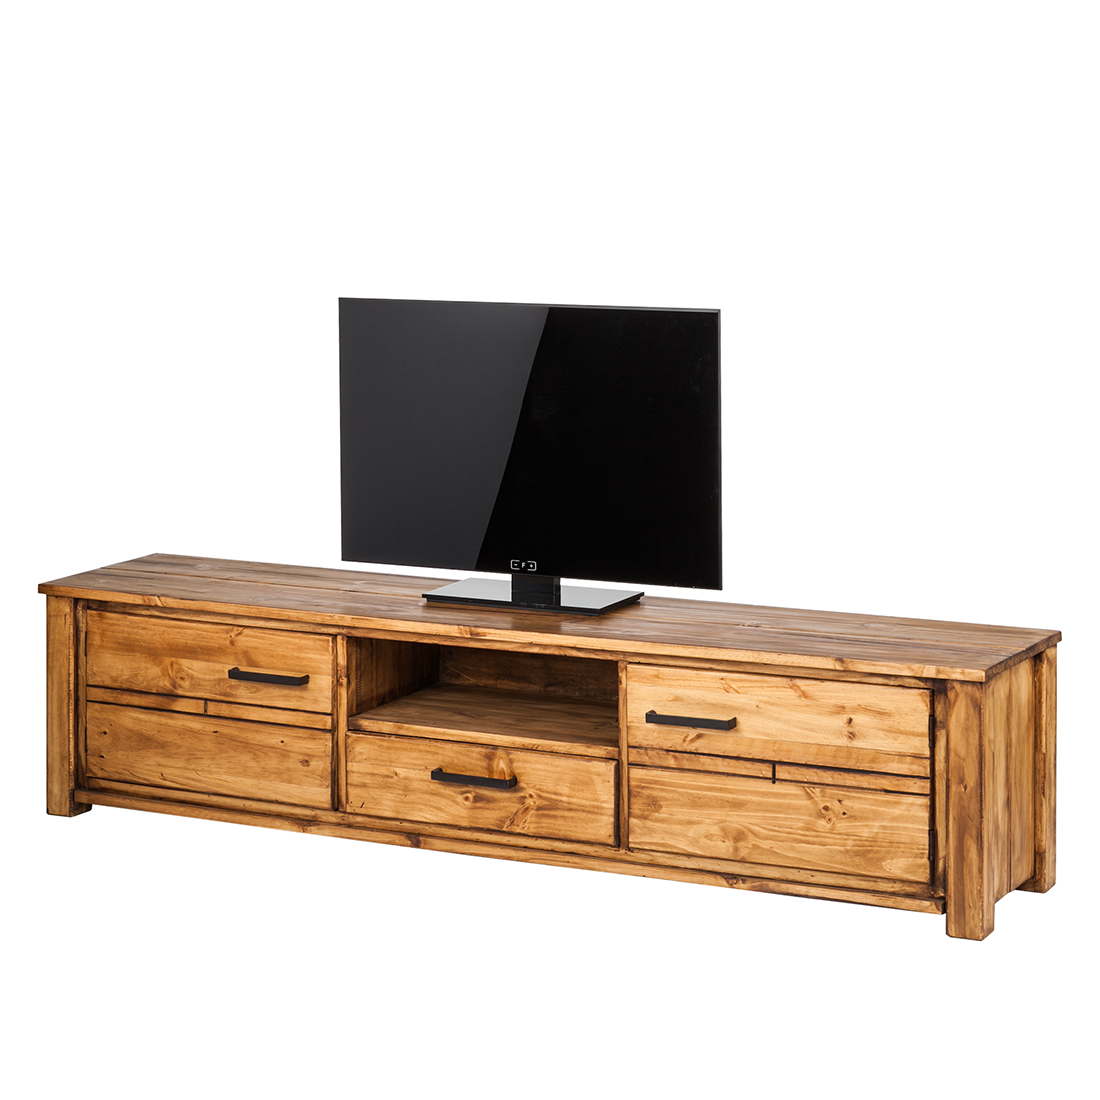 lowboard pinie massivholz 205cm fernsehtisch sideboard tv. Black Bedroom Furniture Sets. Home Design Ideas